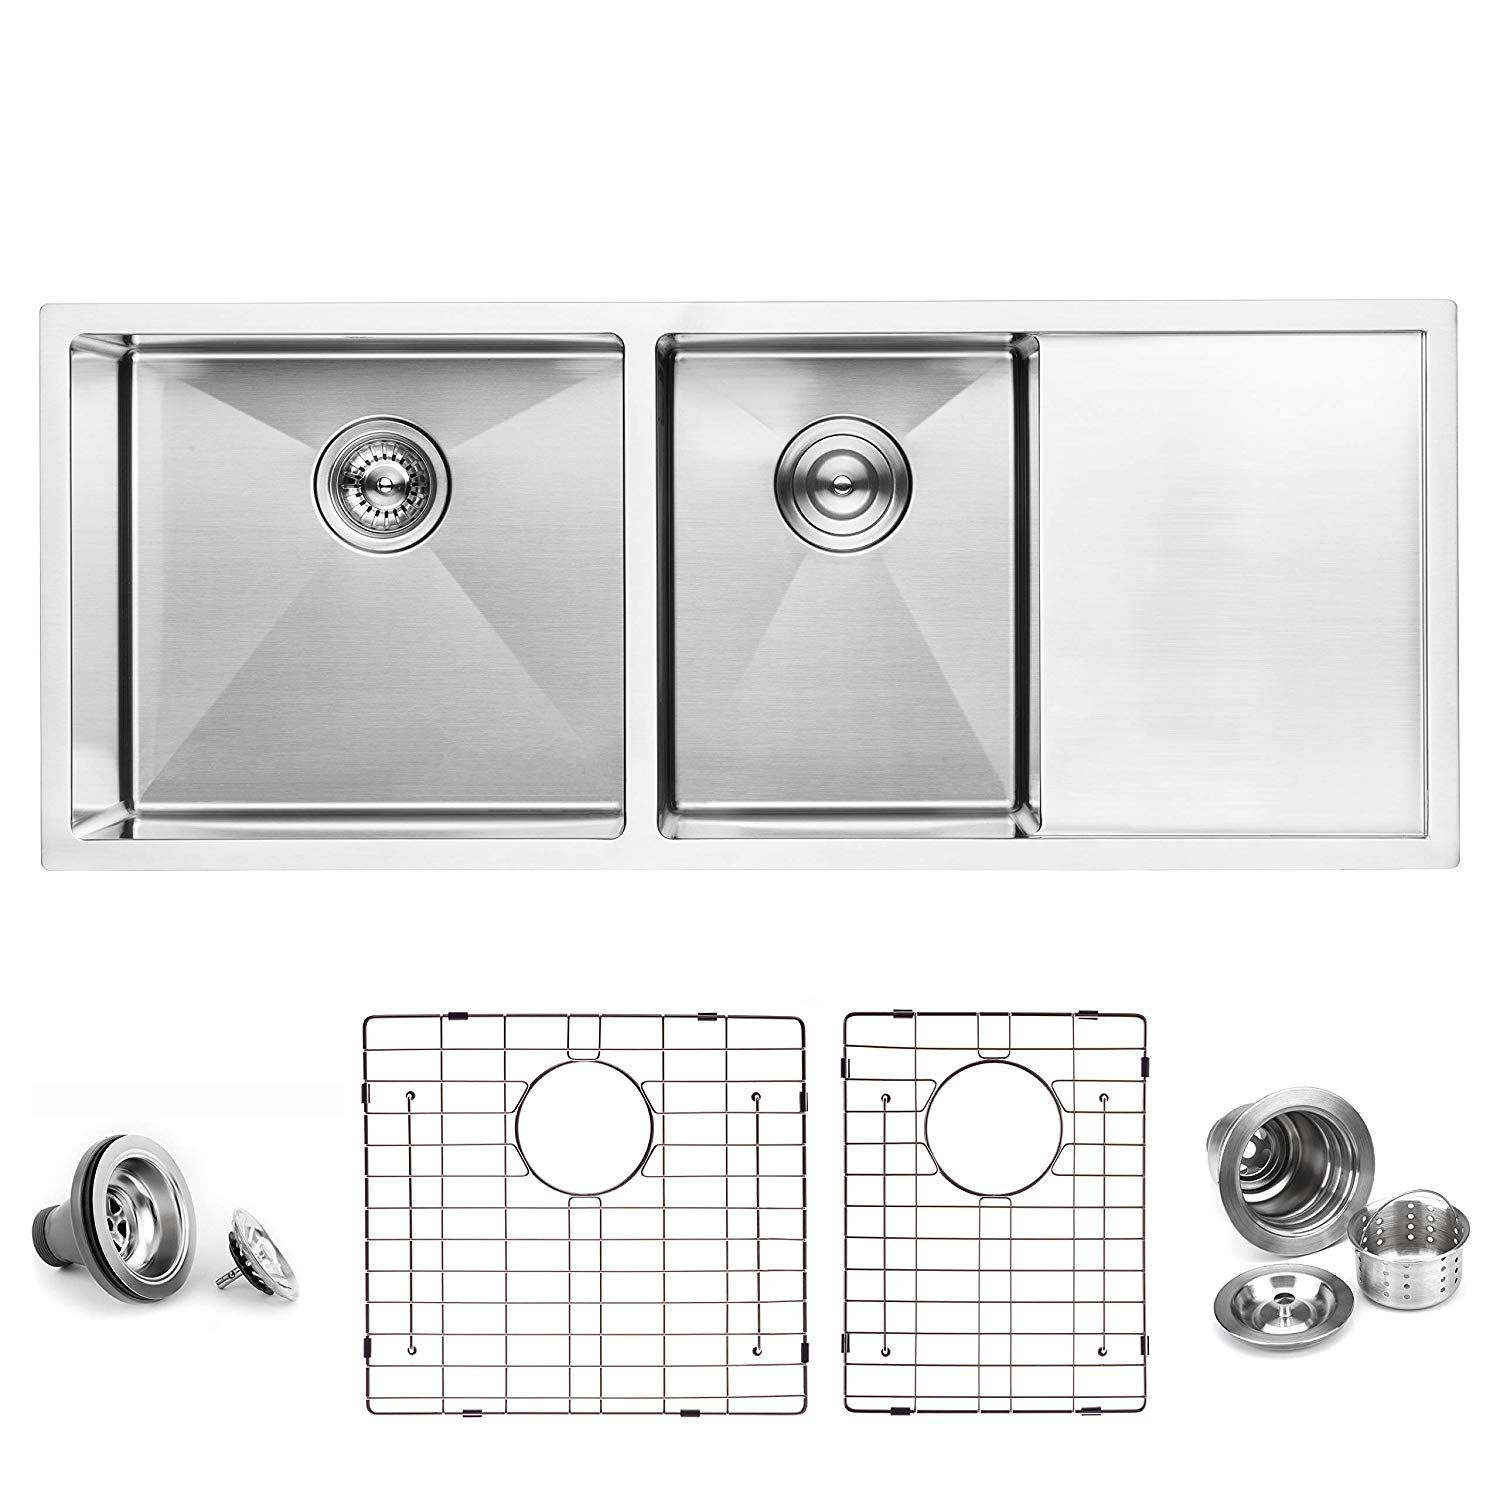 Bai 1255 45 Handmade Stainless Steel Kitchen Sink Double Bowl With Drainboard Under Mount 16 Stainless Steel Kitchen Sink Stainless Steel Kitchen Kitchen Sink